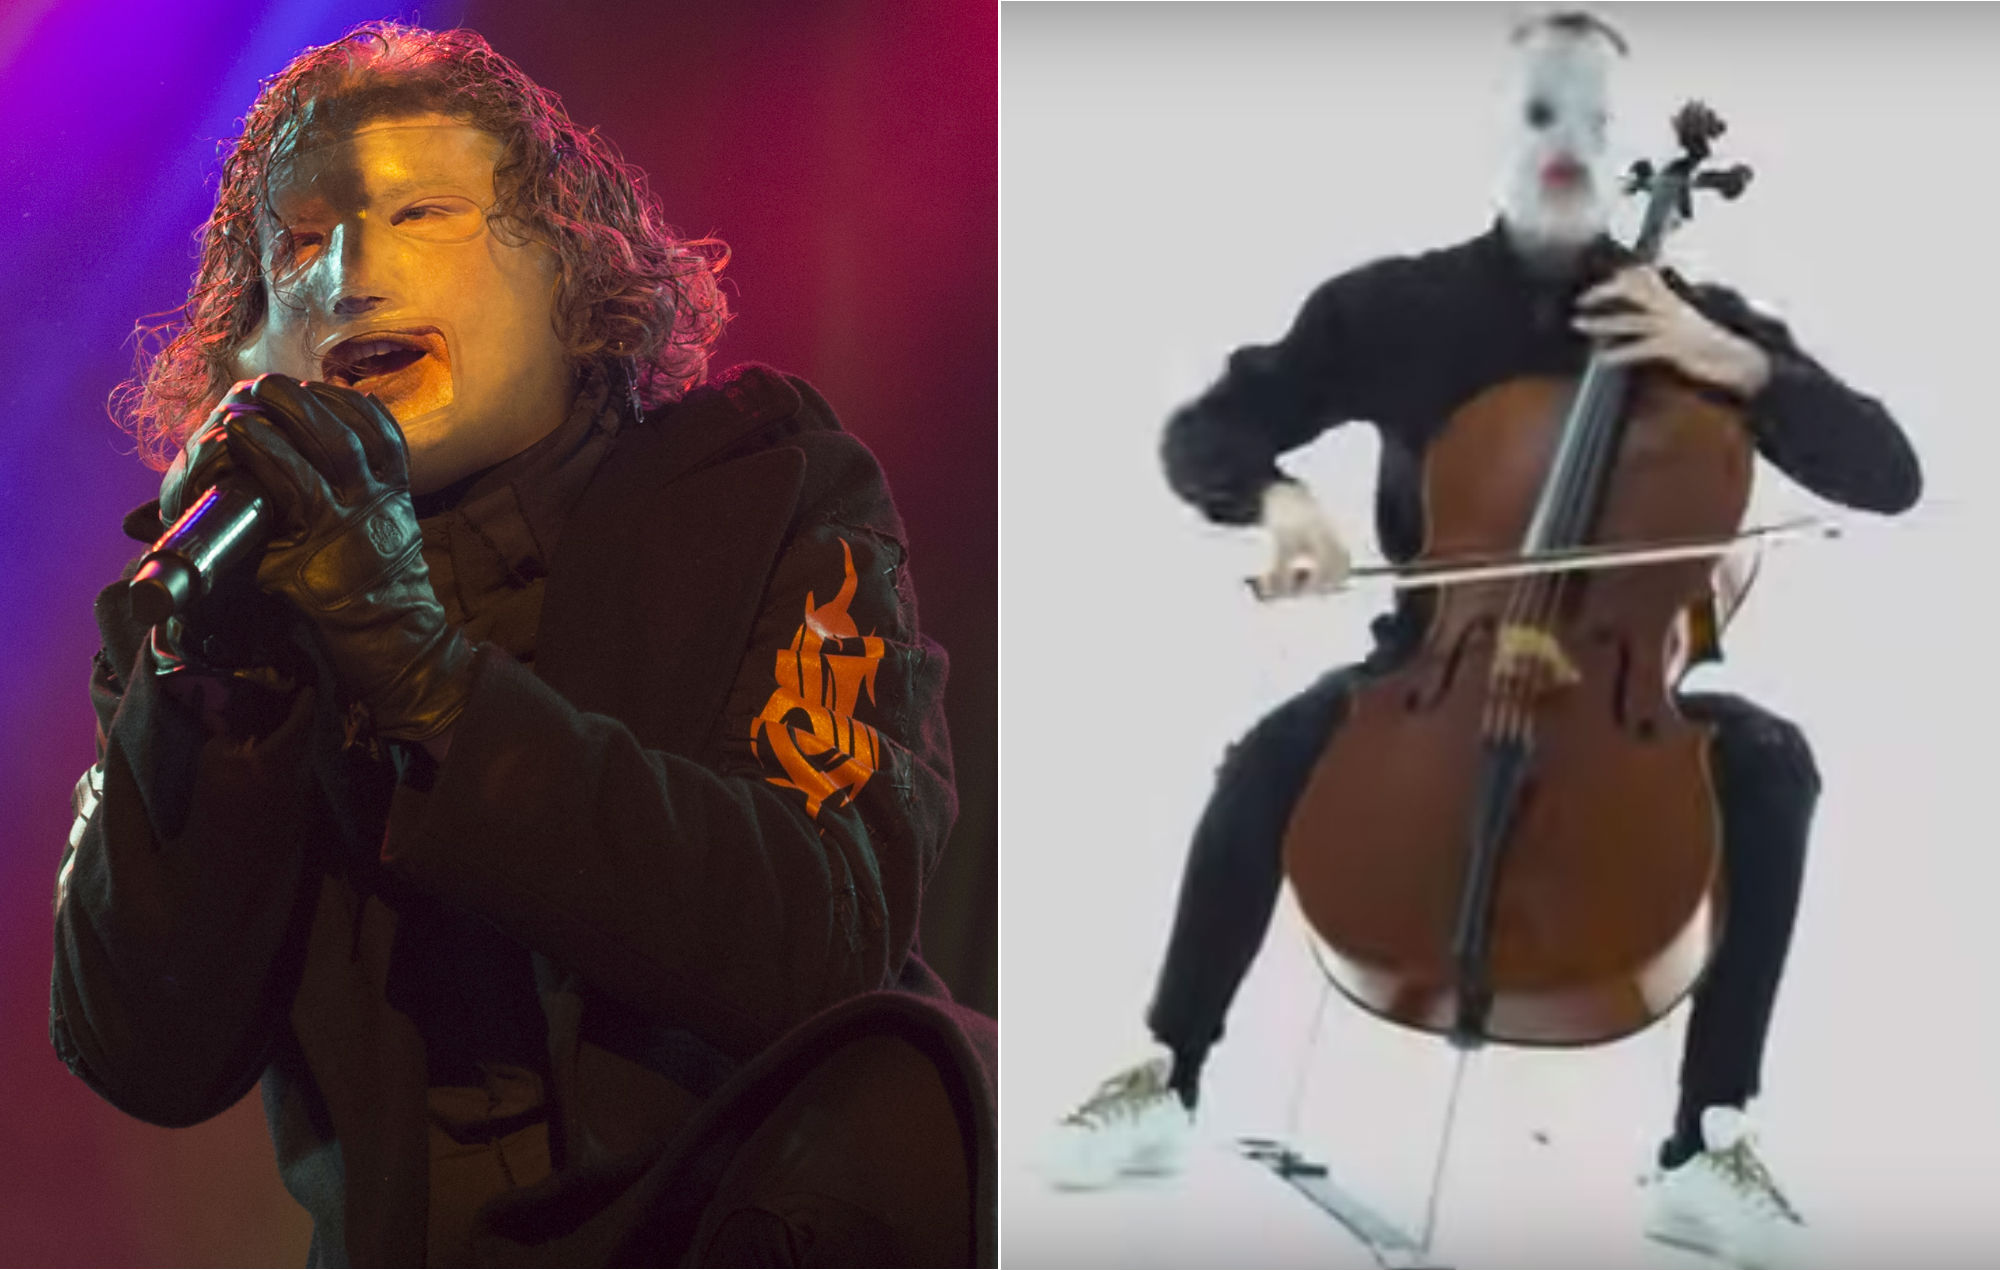 Watch masked classical cellist cover Slipknot – with chilling results